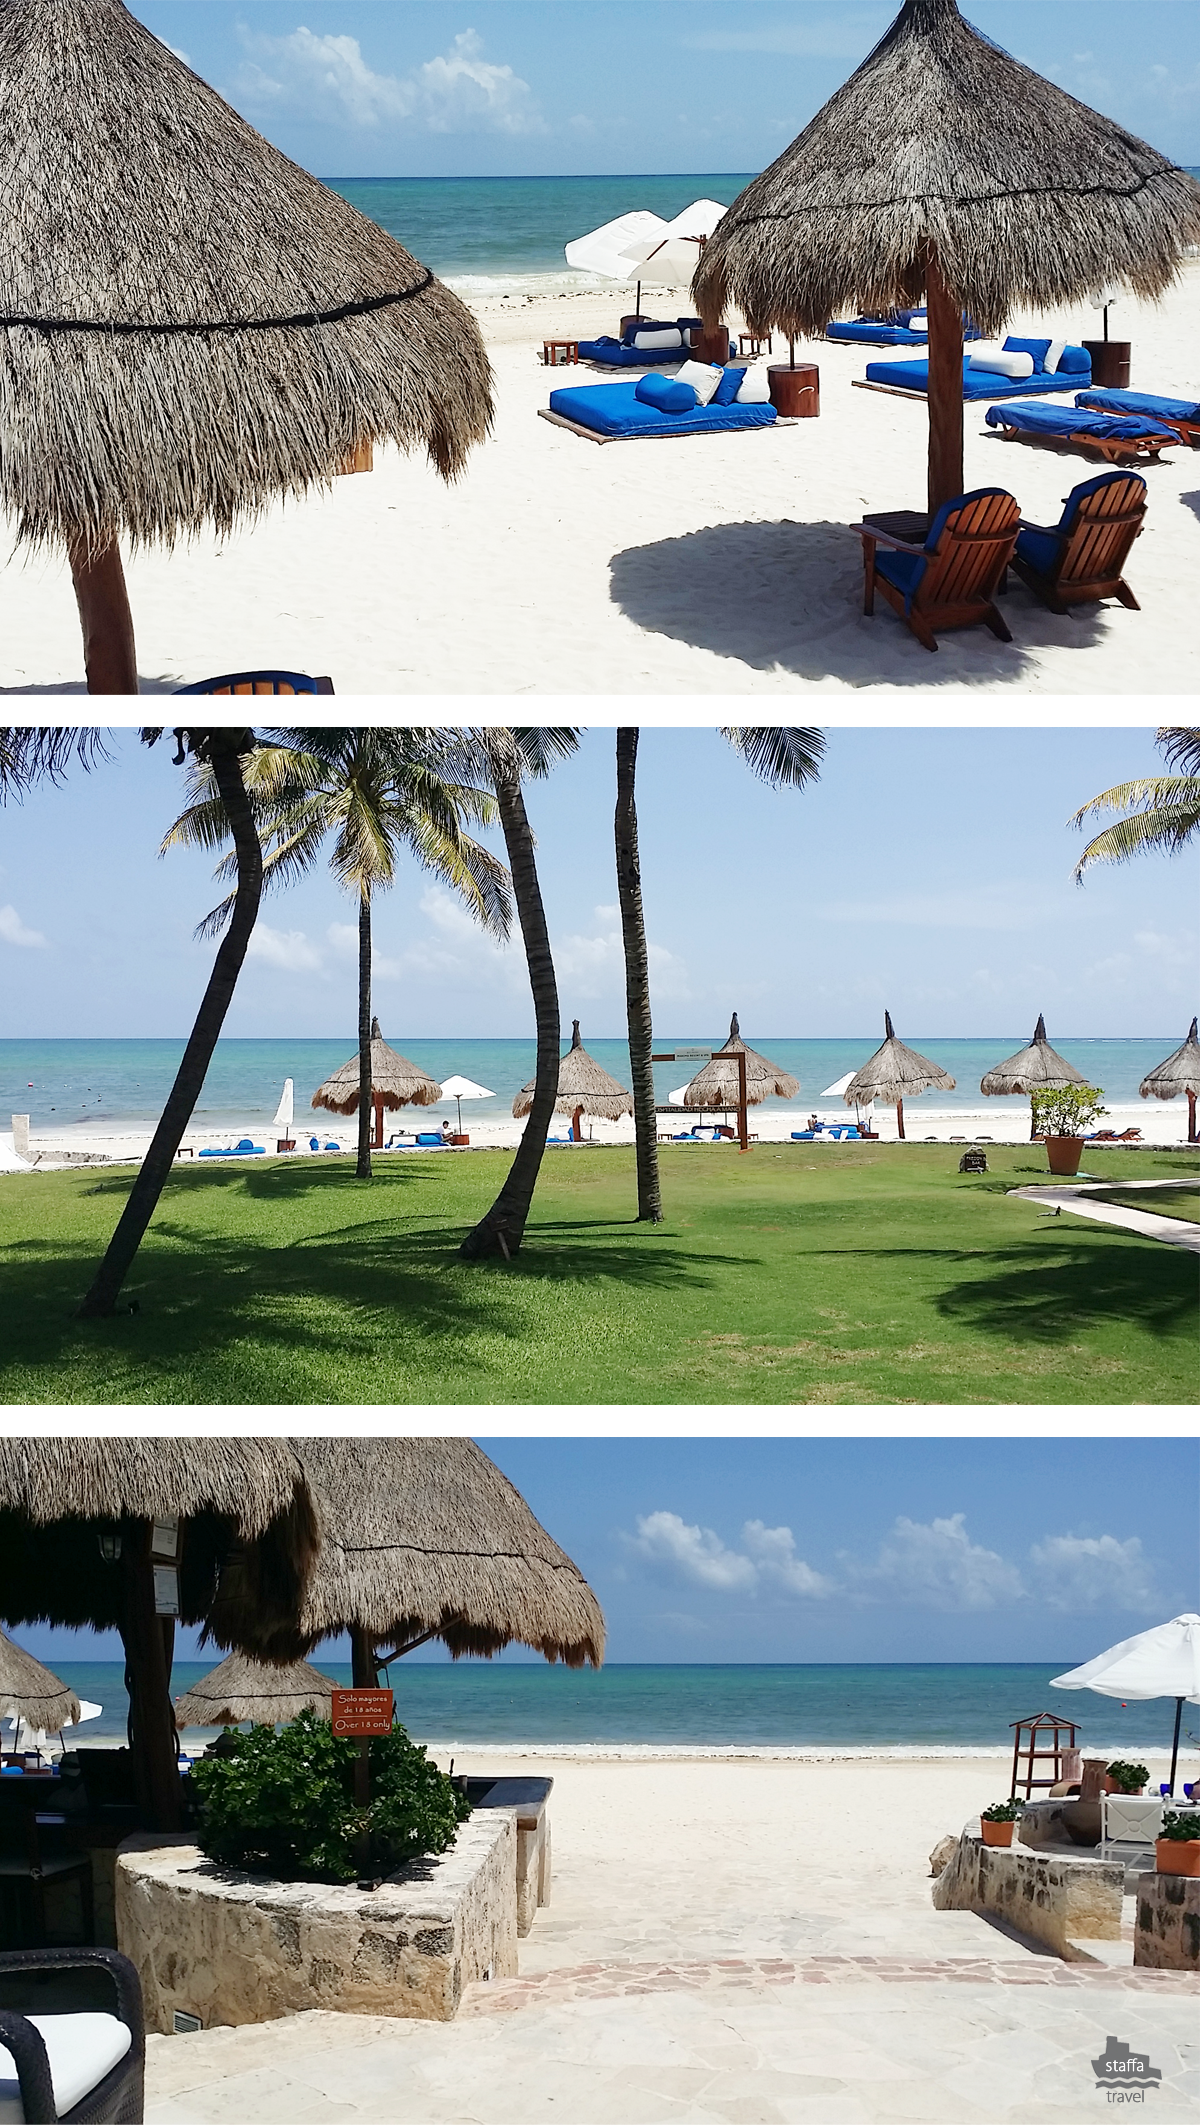 19-The-Belmond-Maroma-Beach-Mexico-Luxury-Hotel-Honeymoon-Beach